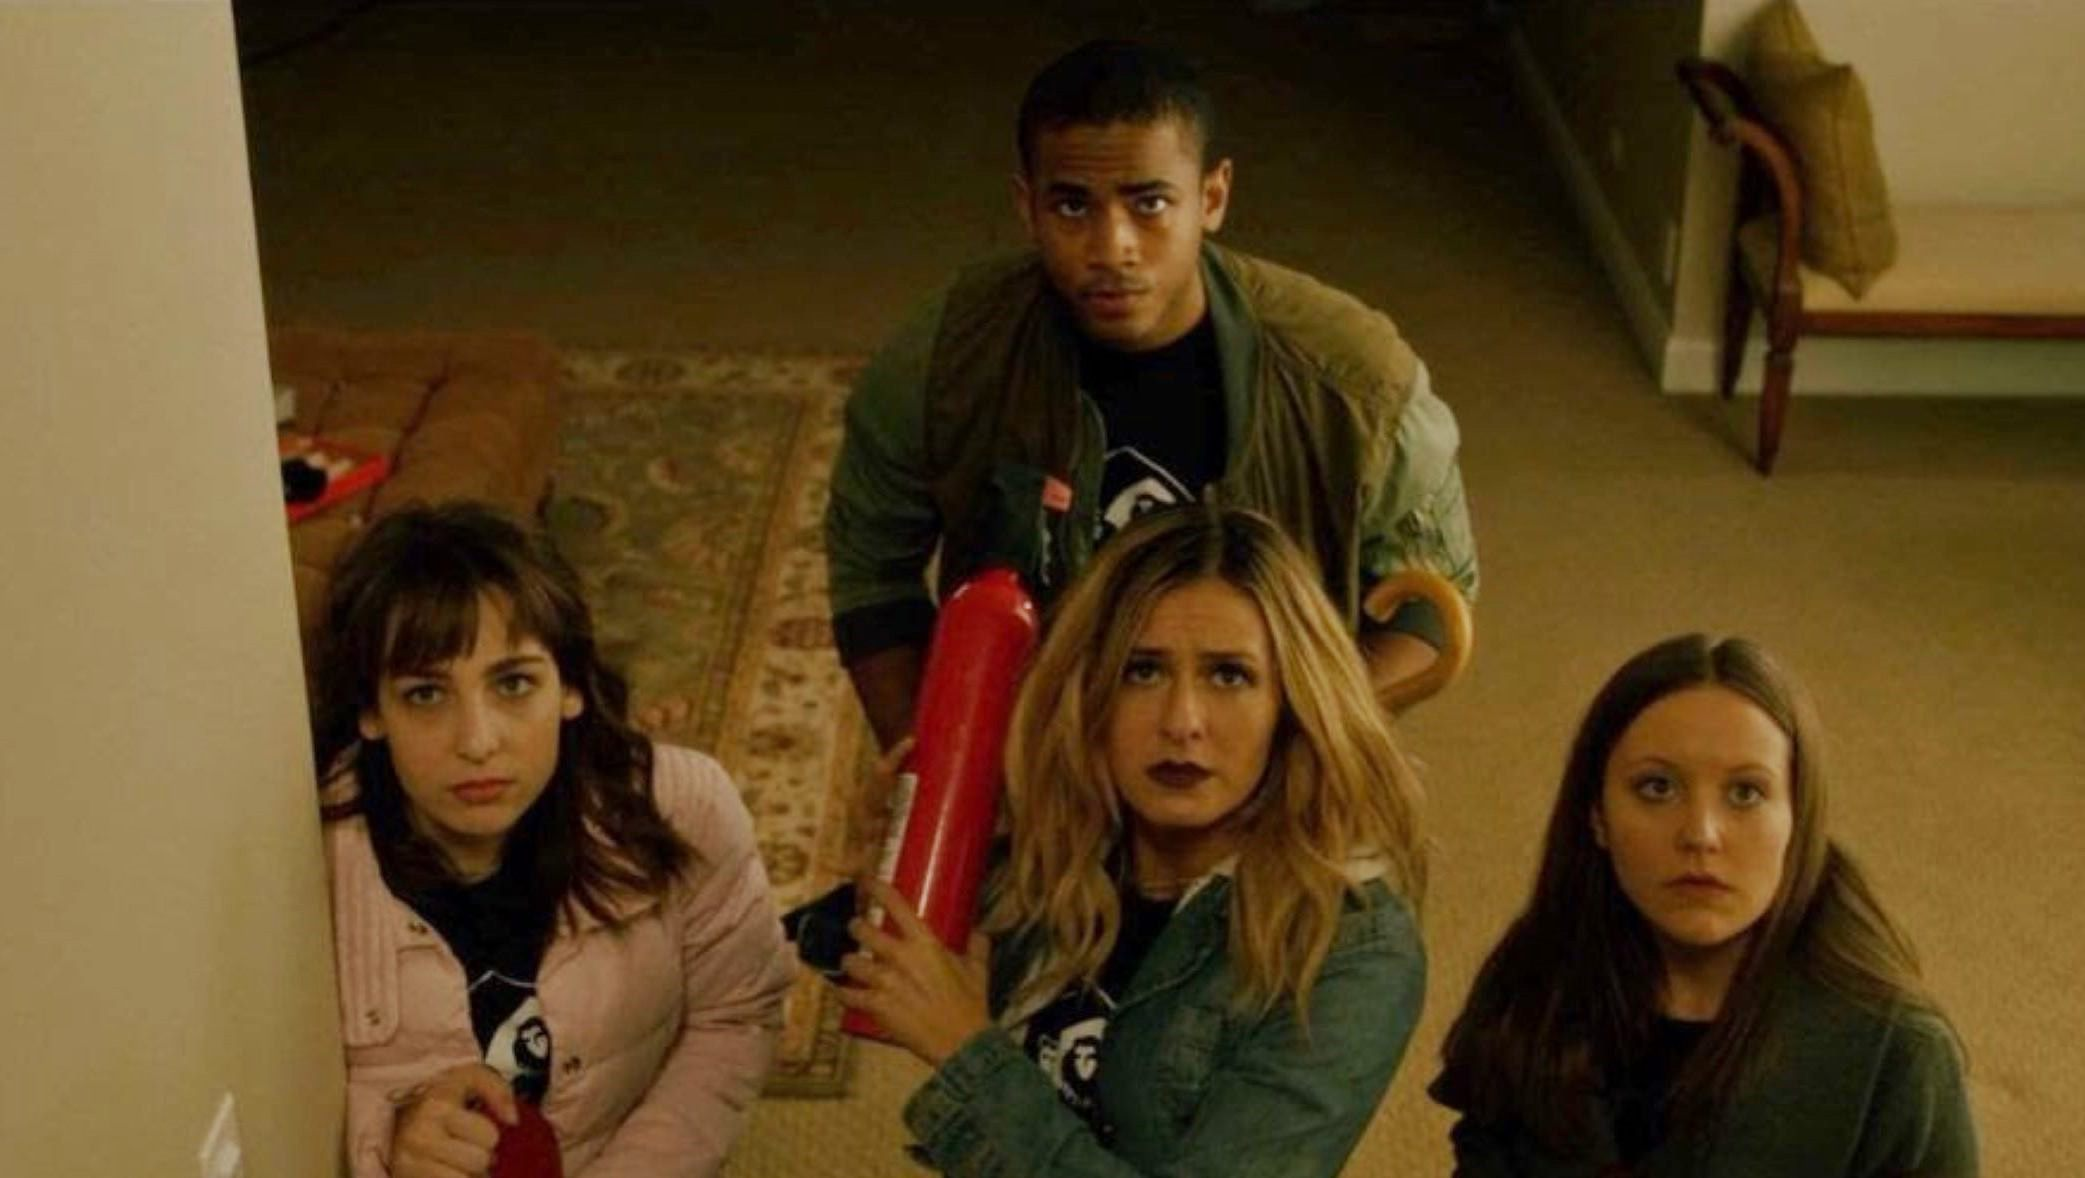 Emmaline Skillicorn, Scout Taylor-Compton, Kali Skatchke and Walter S. Bernard in The Lurker (2019)